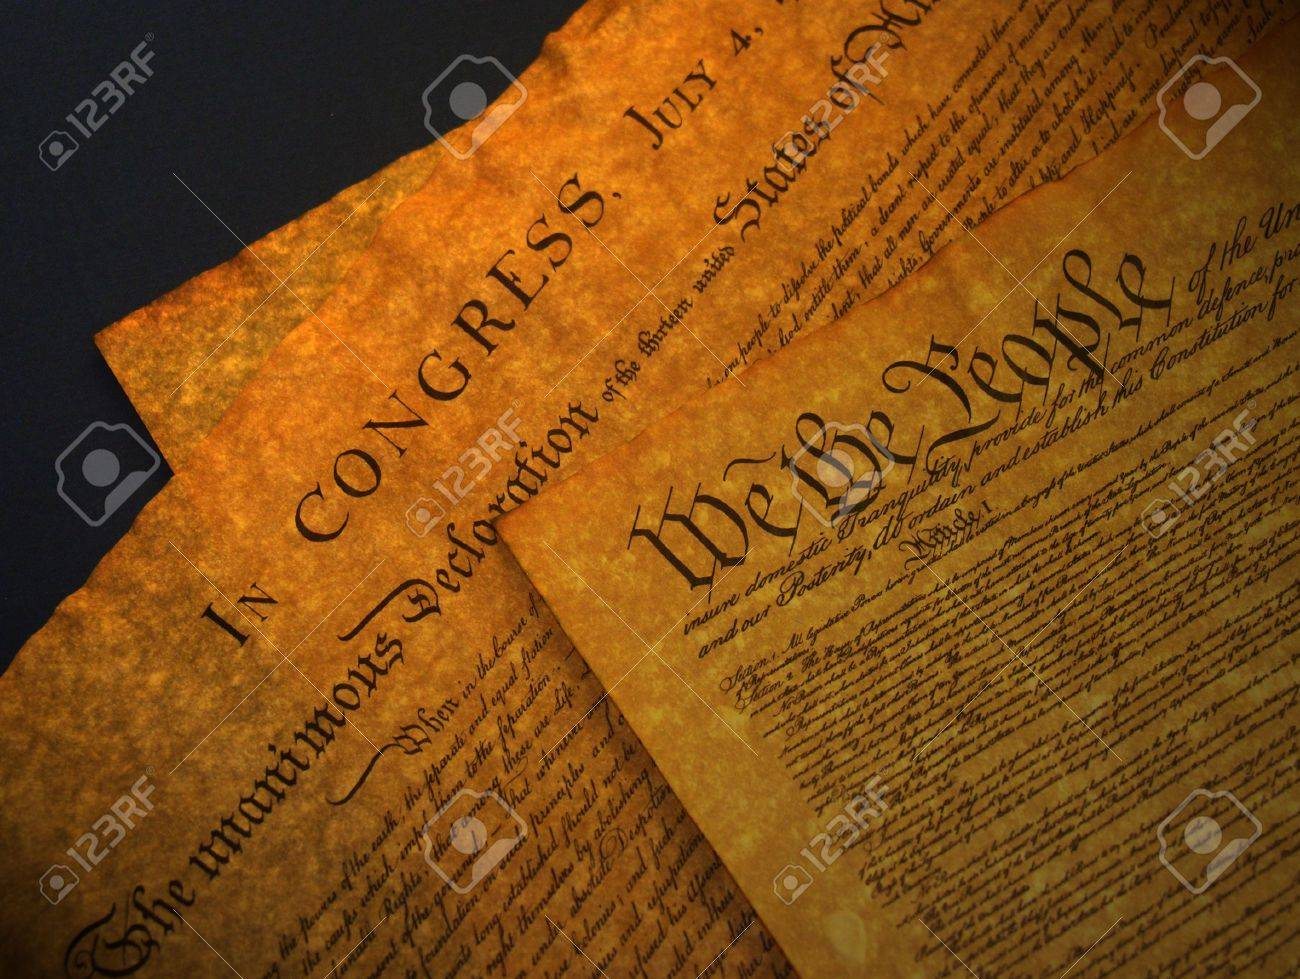 A photo of old historical documents Stock Photo - 366854